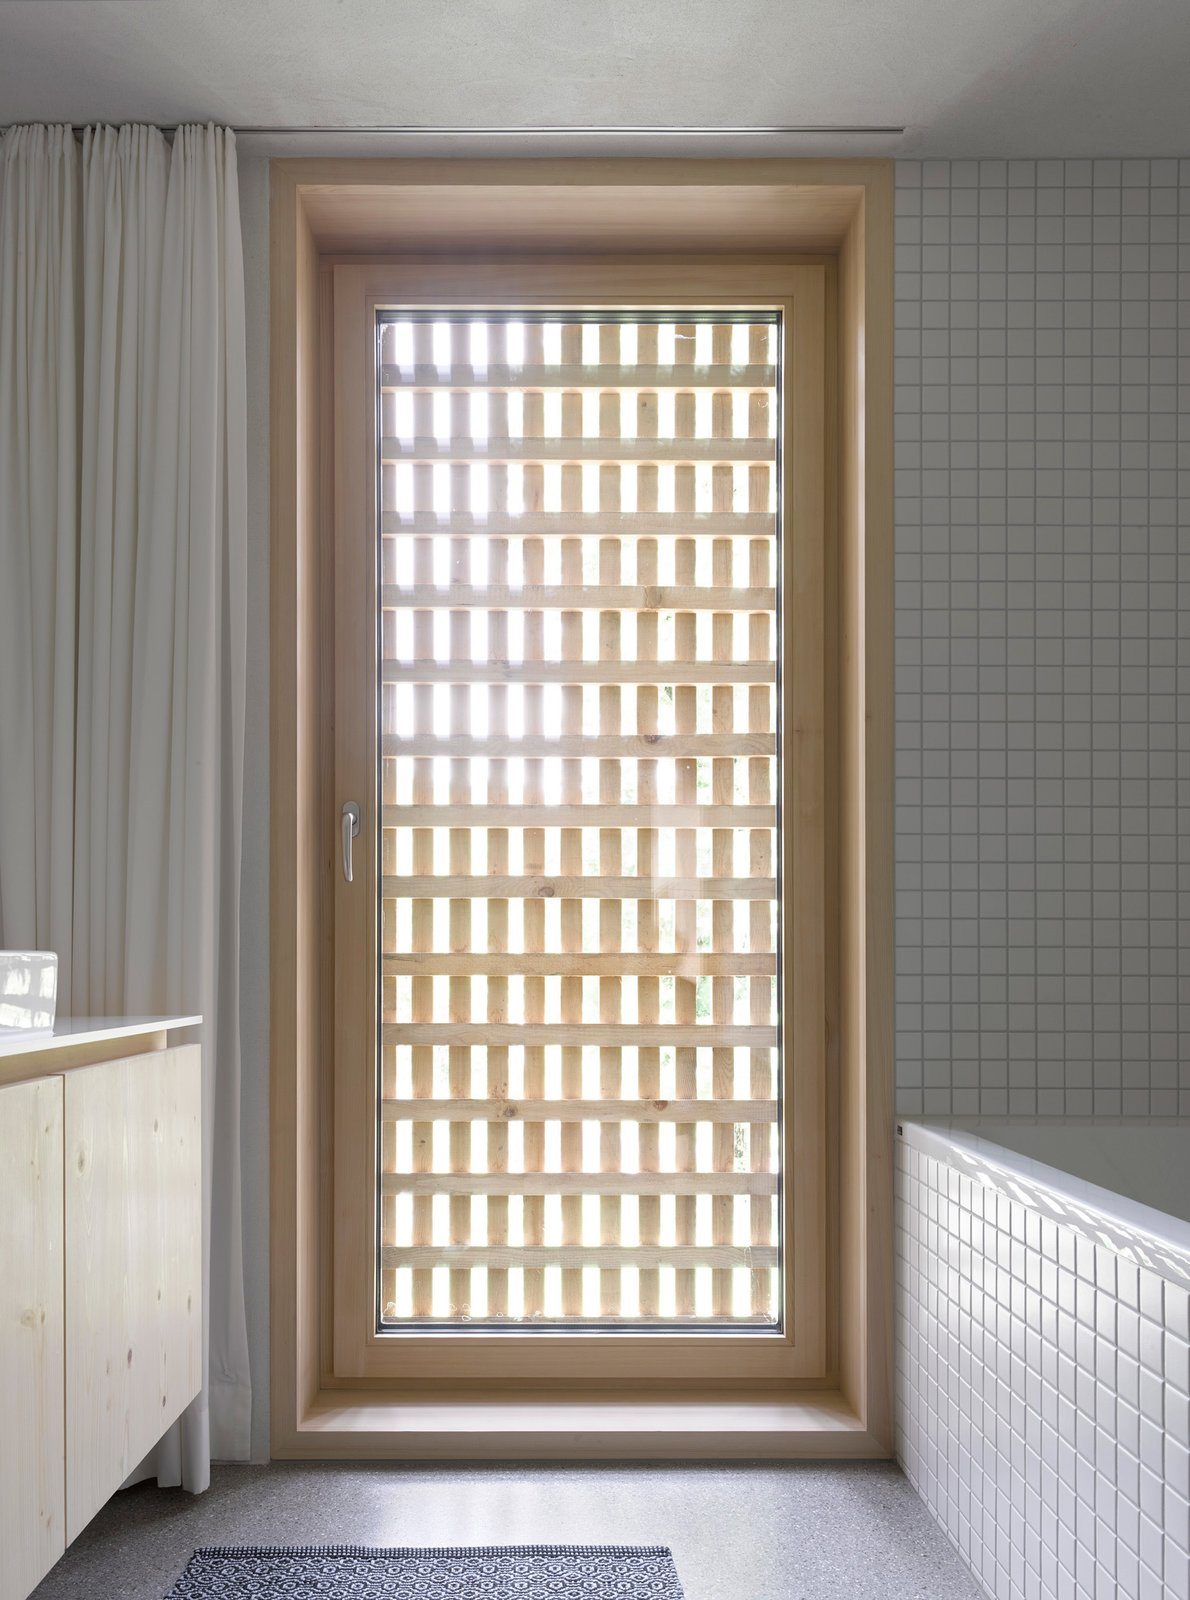 The latticework shell becomes a visual motif in the bathroom, furnished with appliances from Keramag, Kludi, and Laufen. A Simple Gabled House Features an Intricate Latticework Shell - Photo 9 of 10